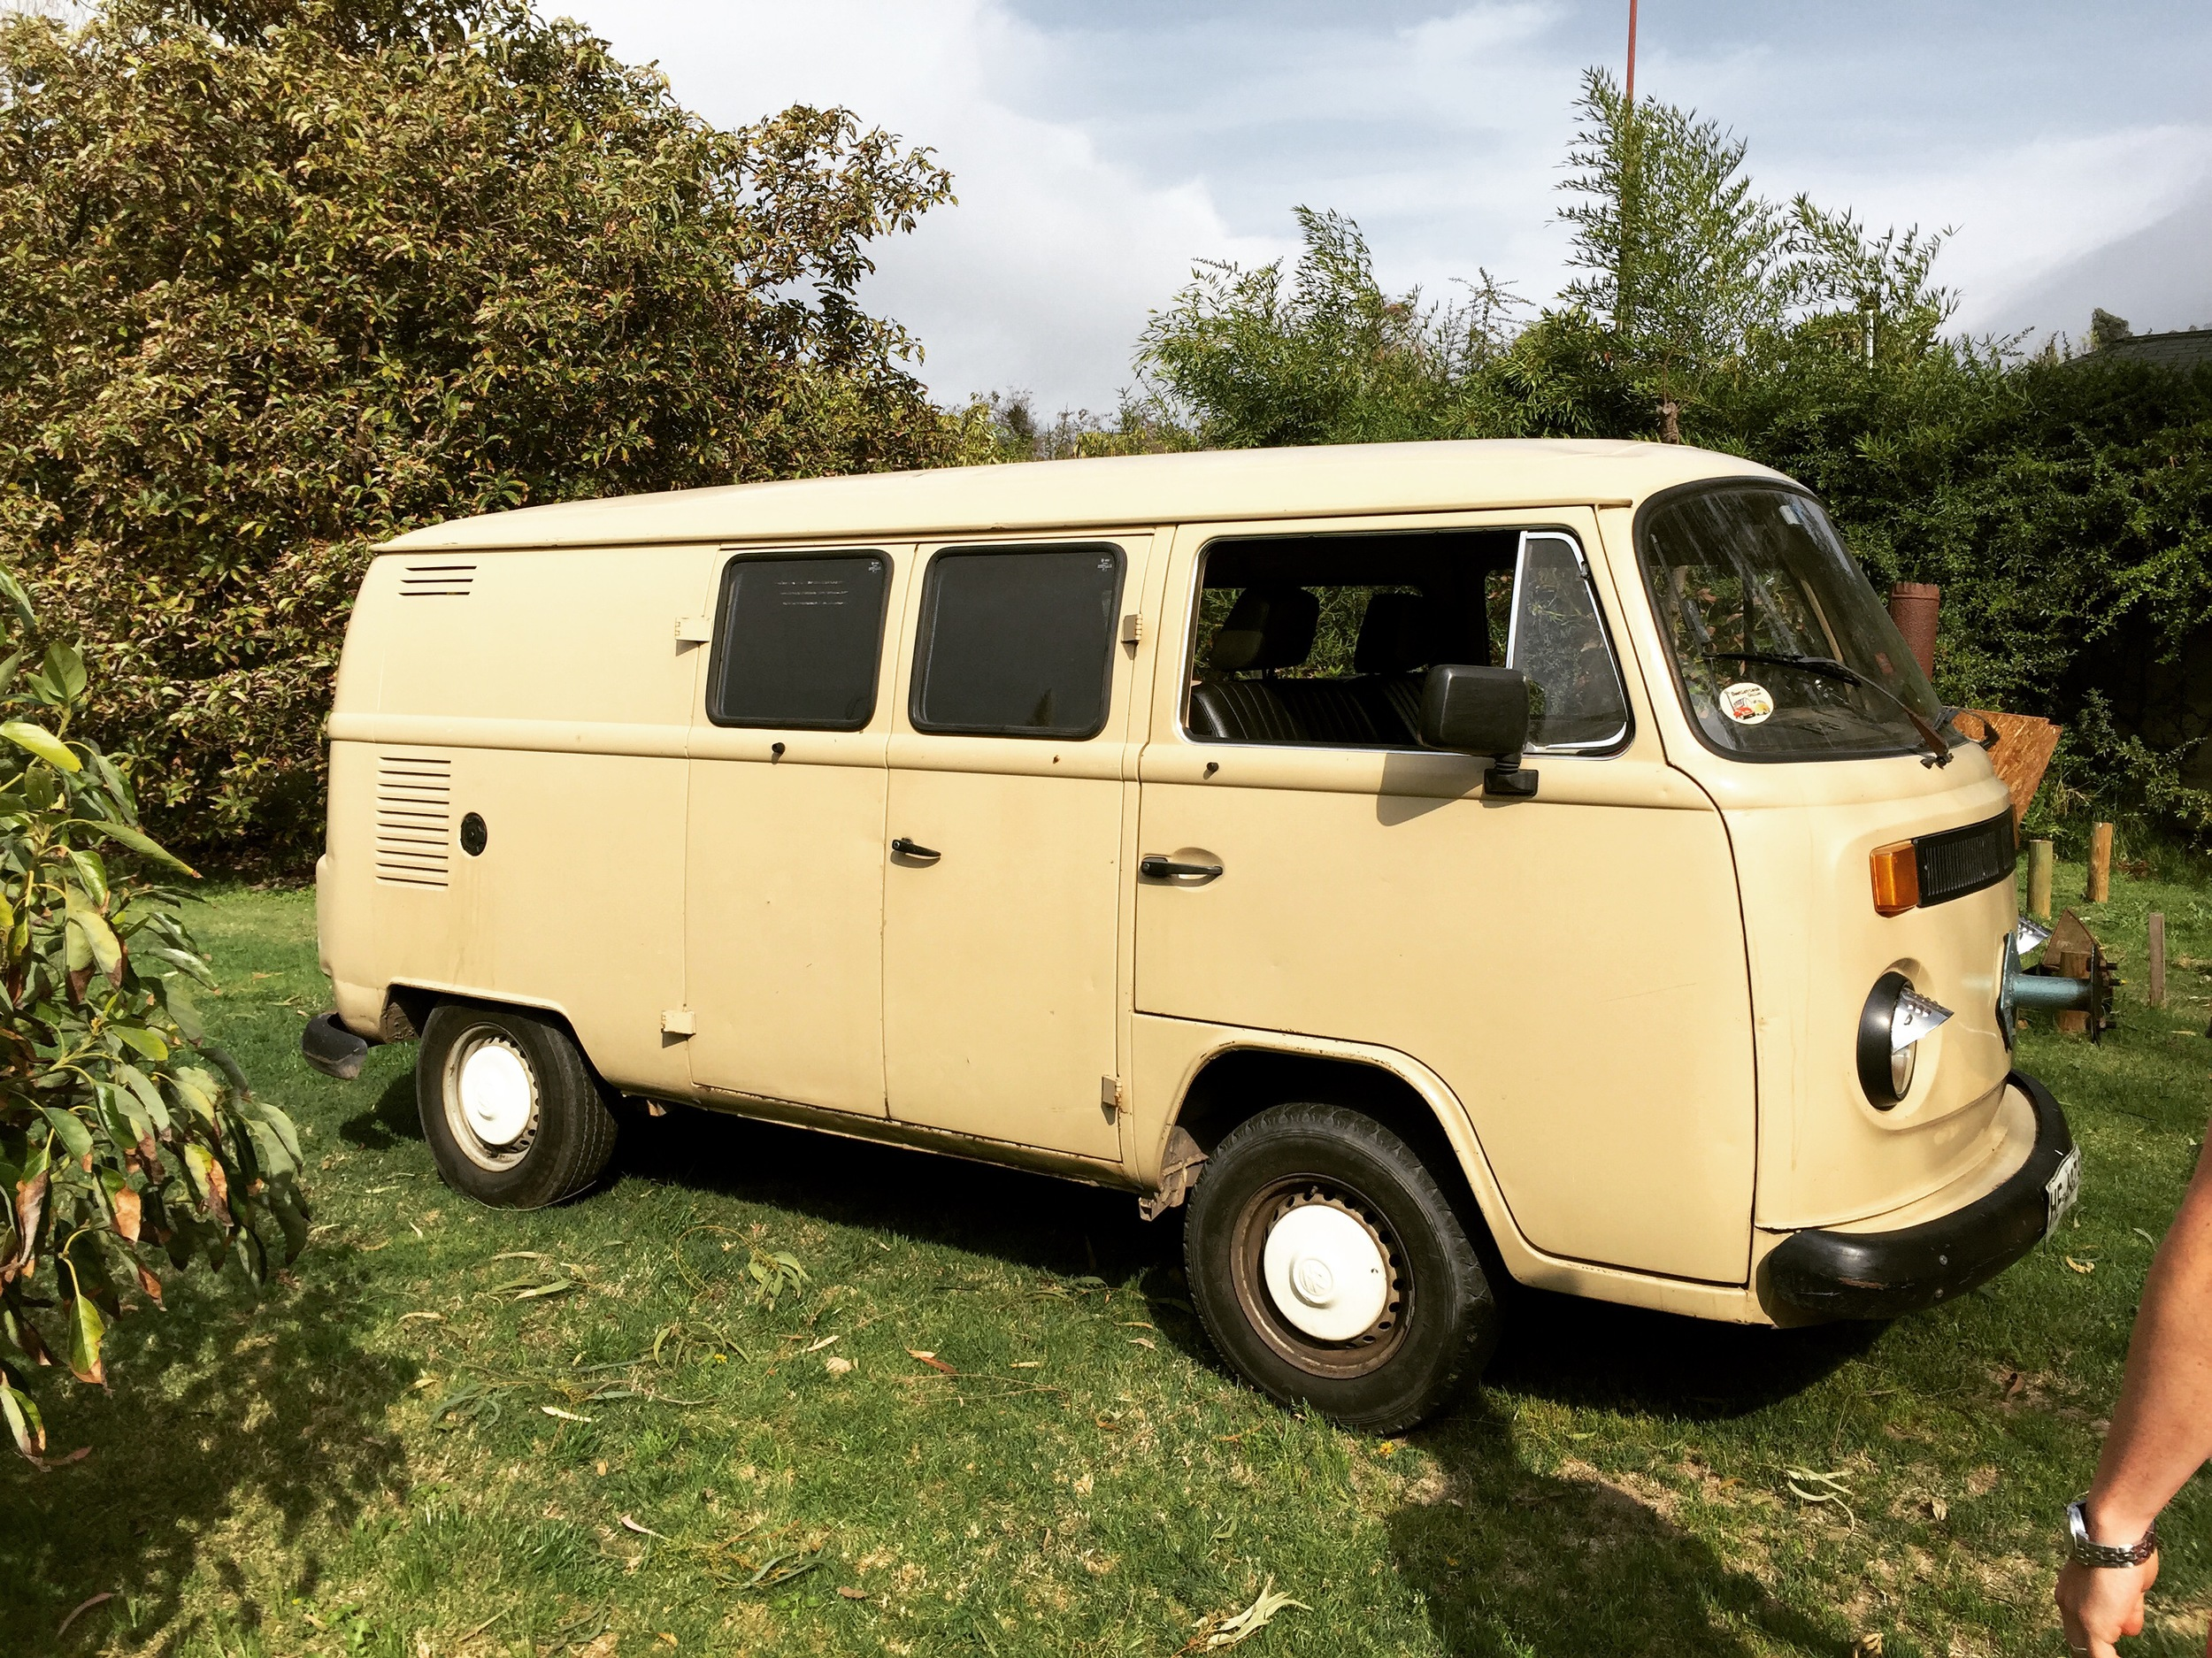 Introducing... Lila's Wagen! Or at least until we get to know each other better and we give her another name.